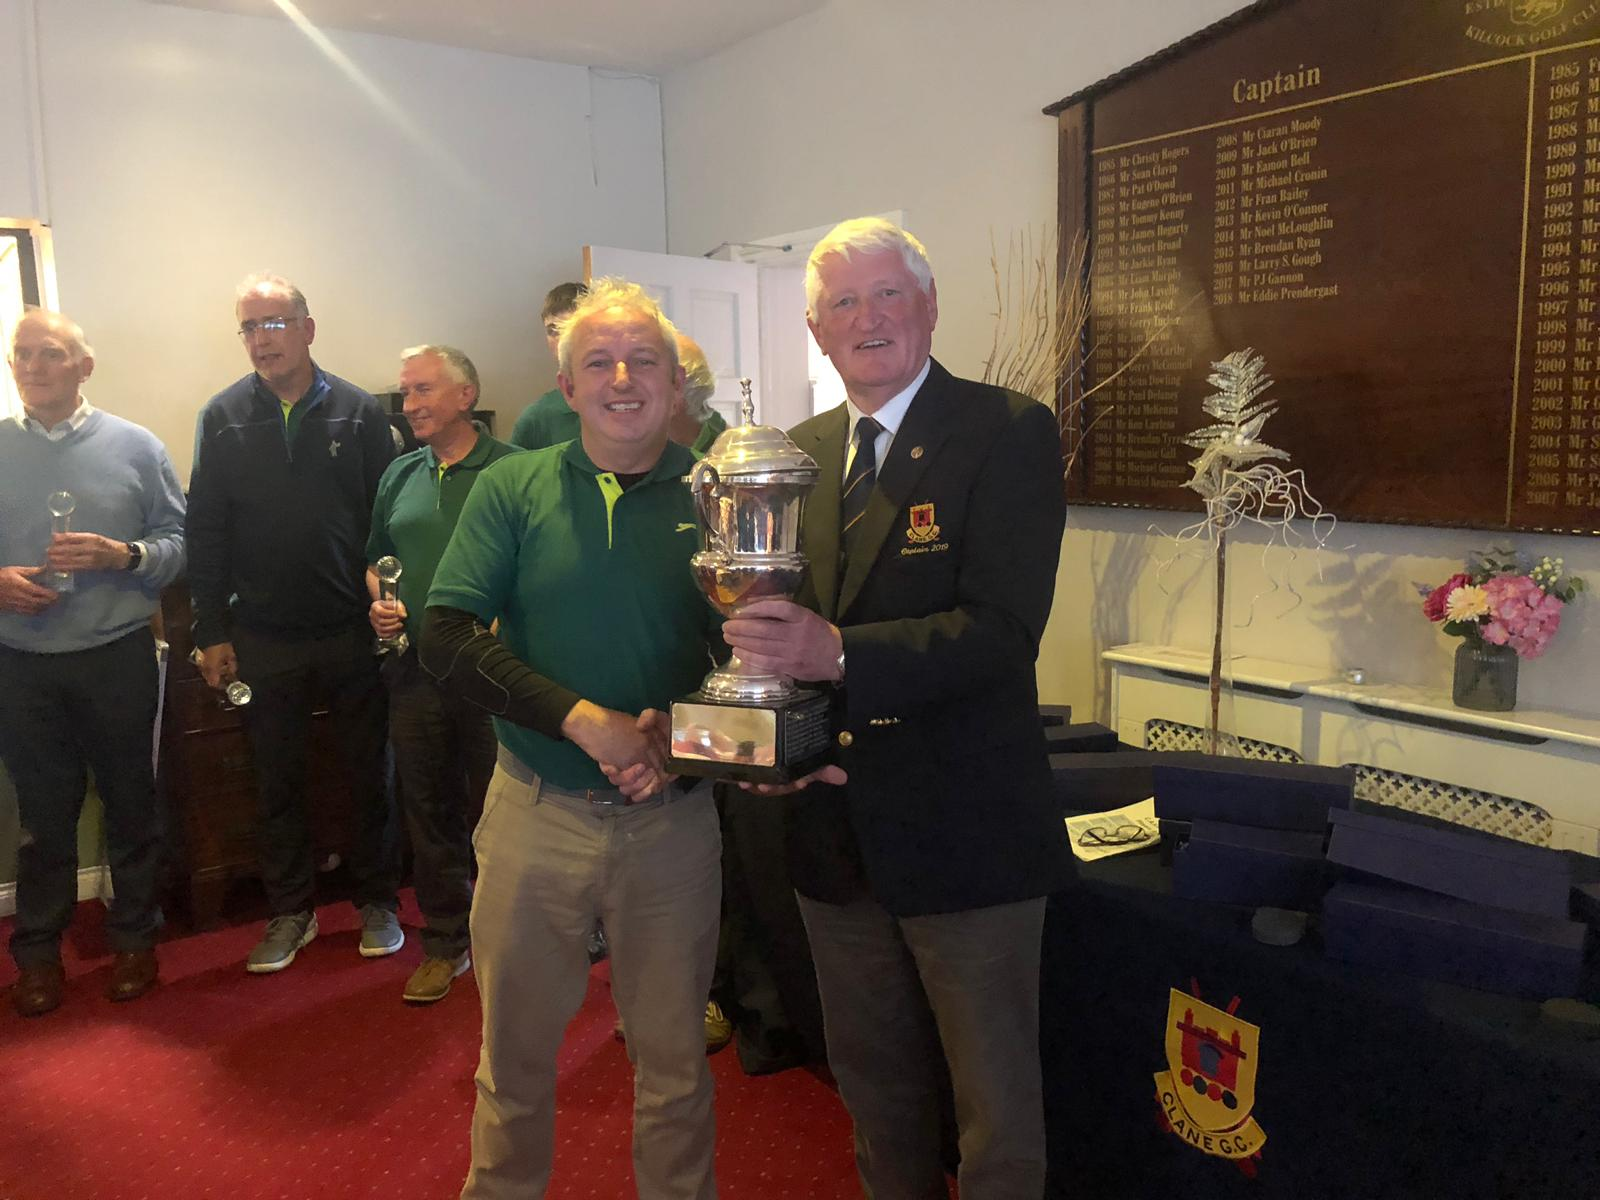 Capt. Maurice Byrne presenting CASC Cup to Captain of winning team, Sallins G.S., Hugh McCreevy